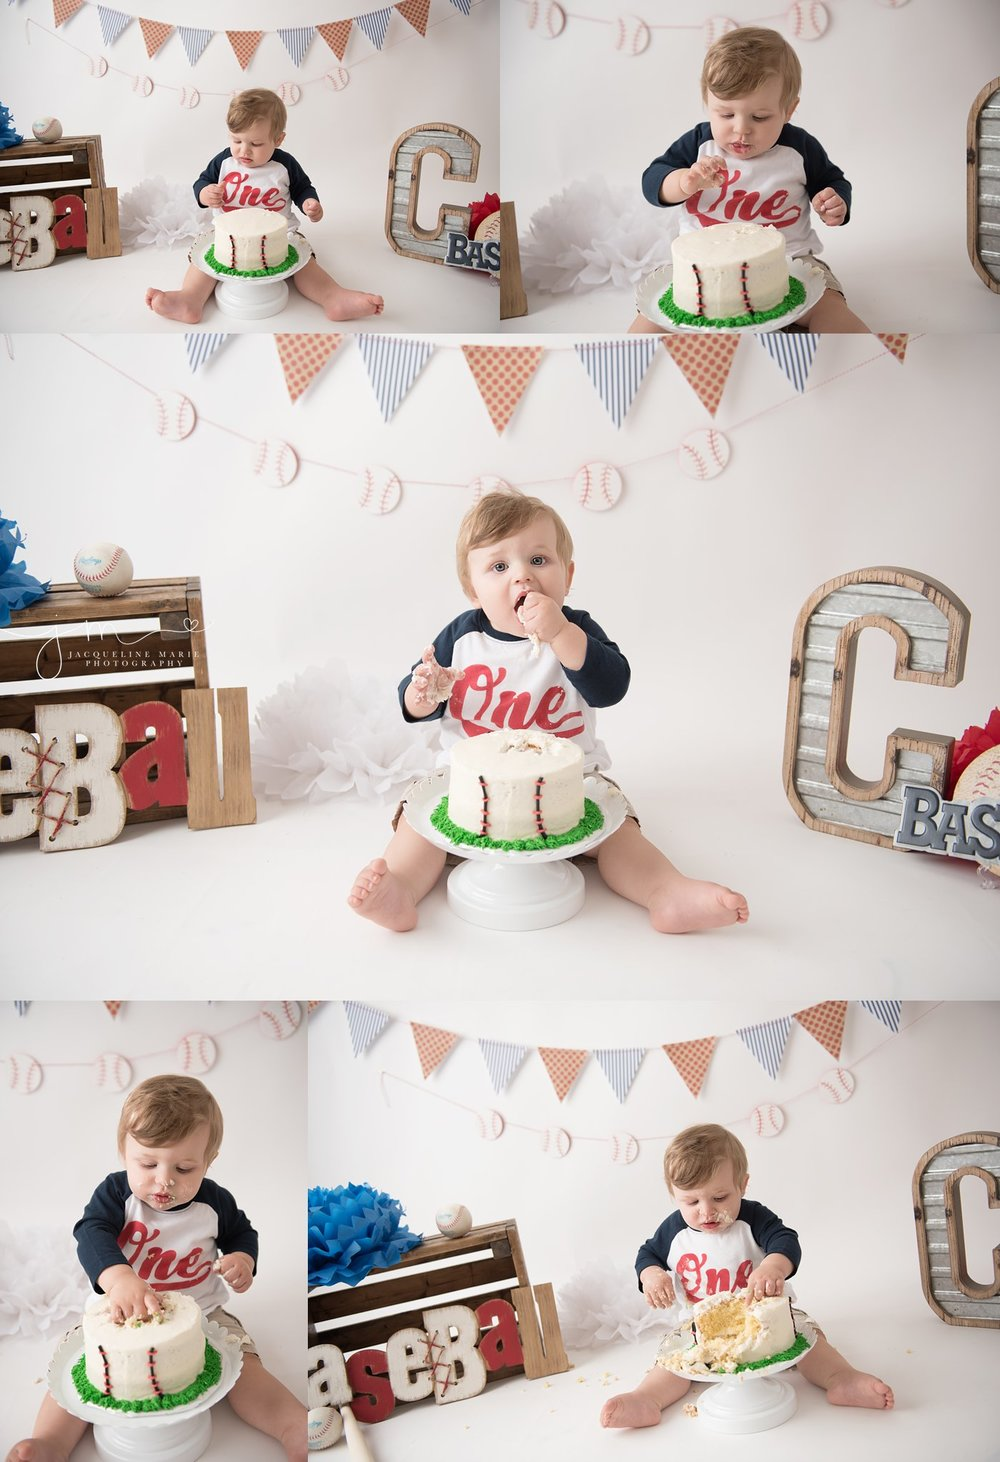 columbus ohio first birthday and cake smash photographer features baseball themed images and bay eating cake for cake smash photography at jacqueline marie photography studio